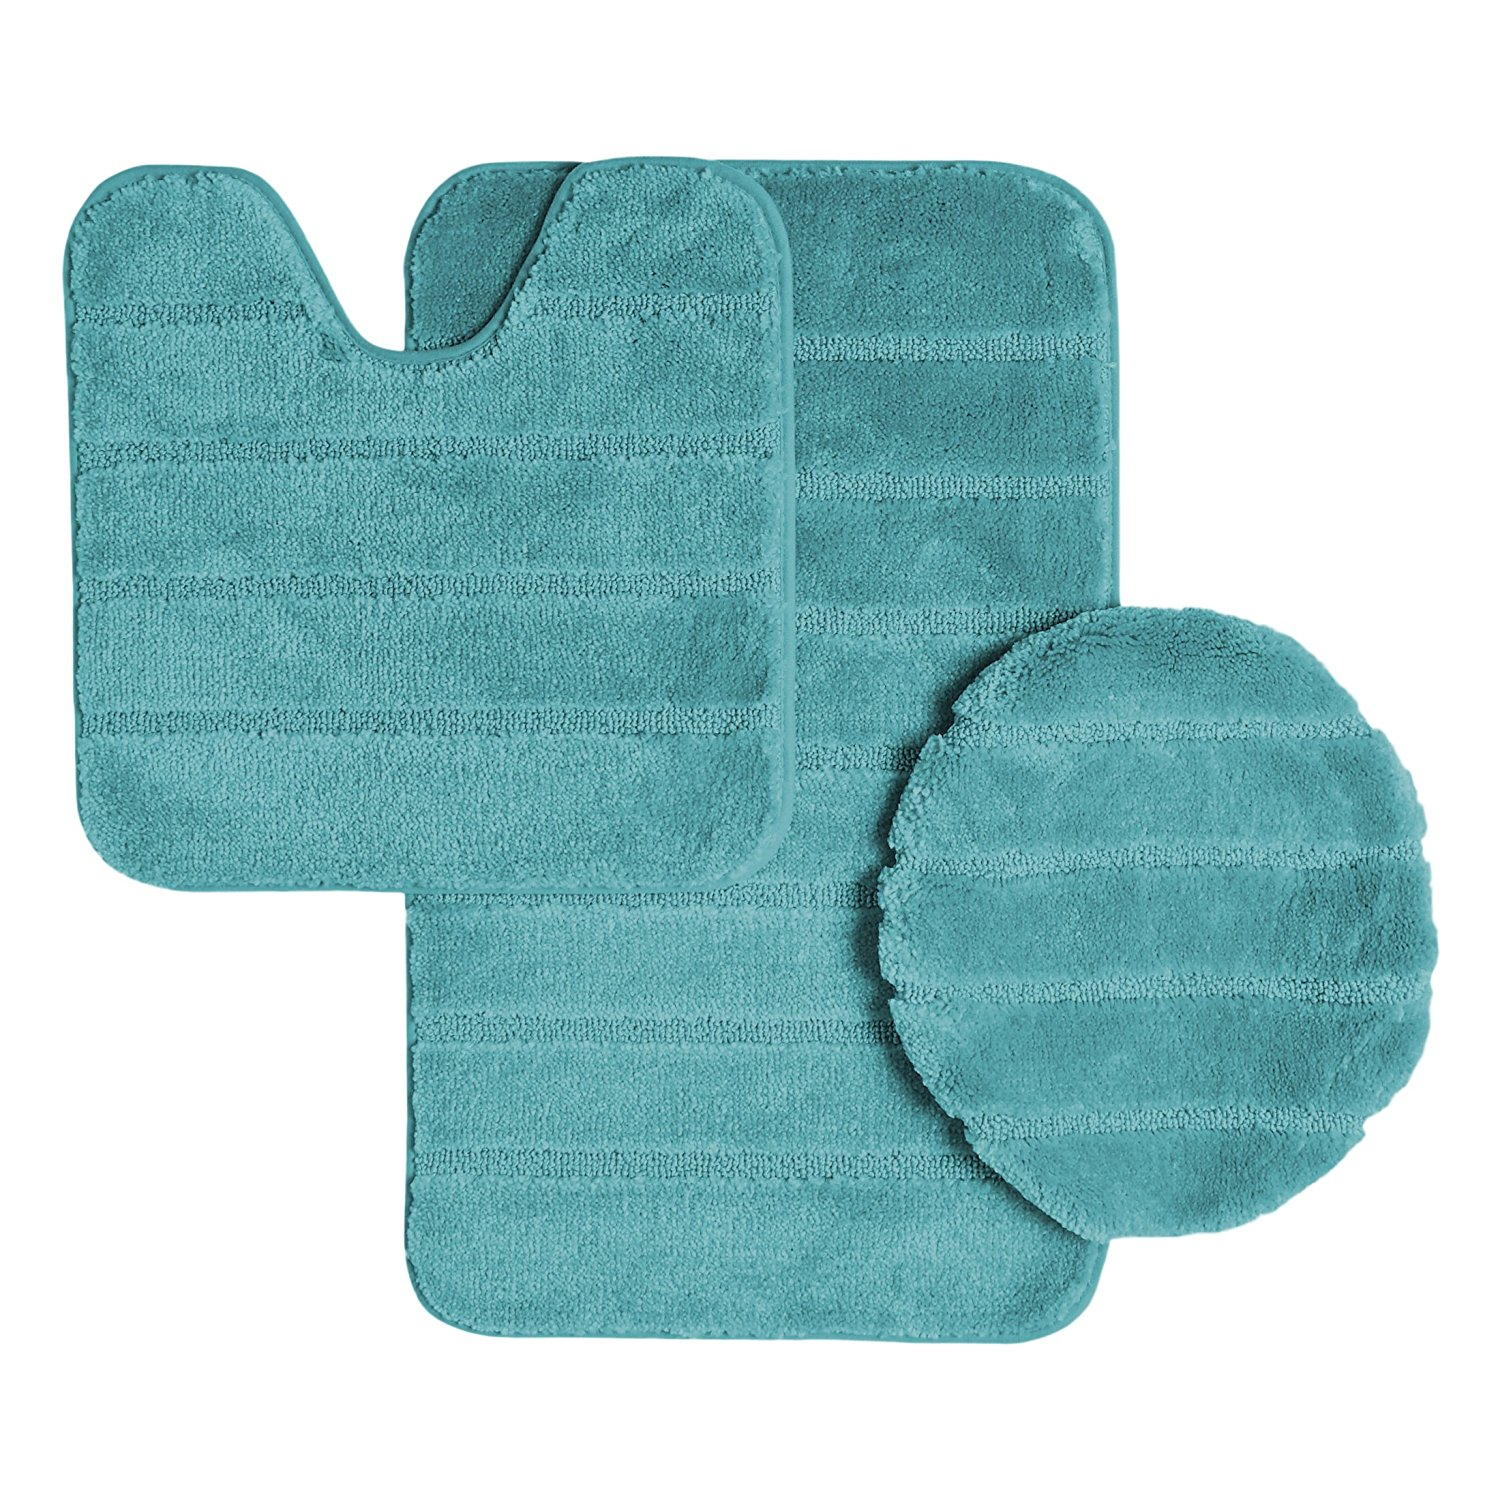 Ribbed Design Soft Pile Solid Color 3 Piece Bathroom Rug Set, Bath Mat, Contour Rug, Universal Lid Cover, Louise (Aqua)